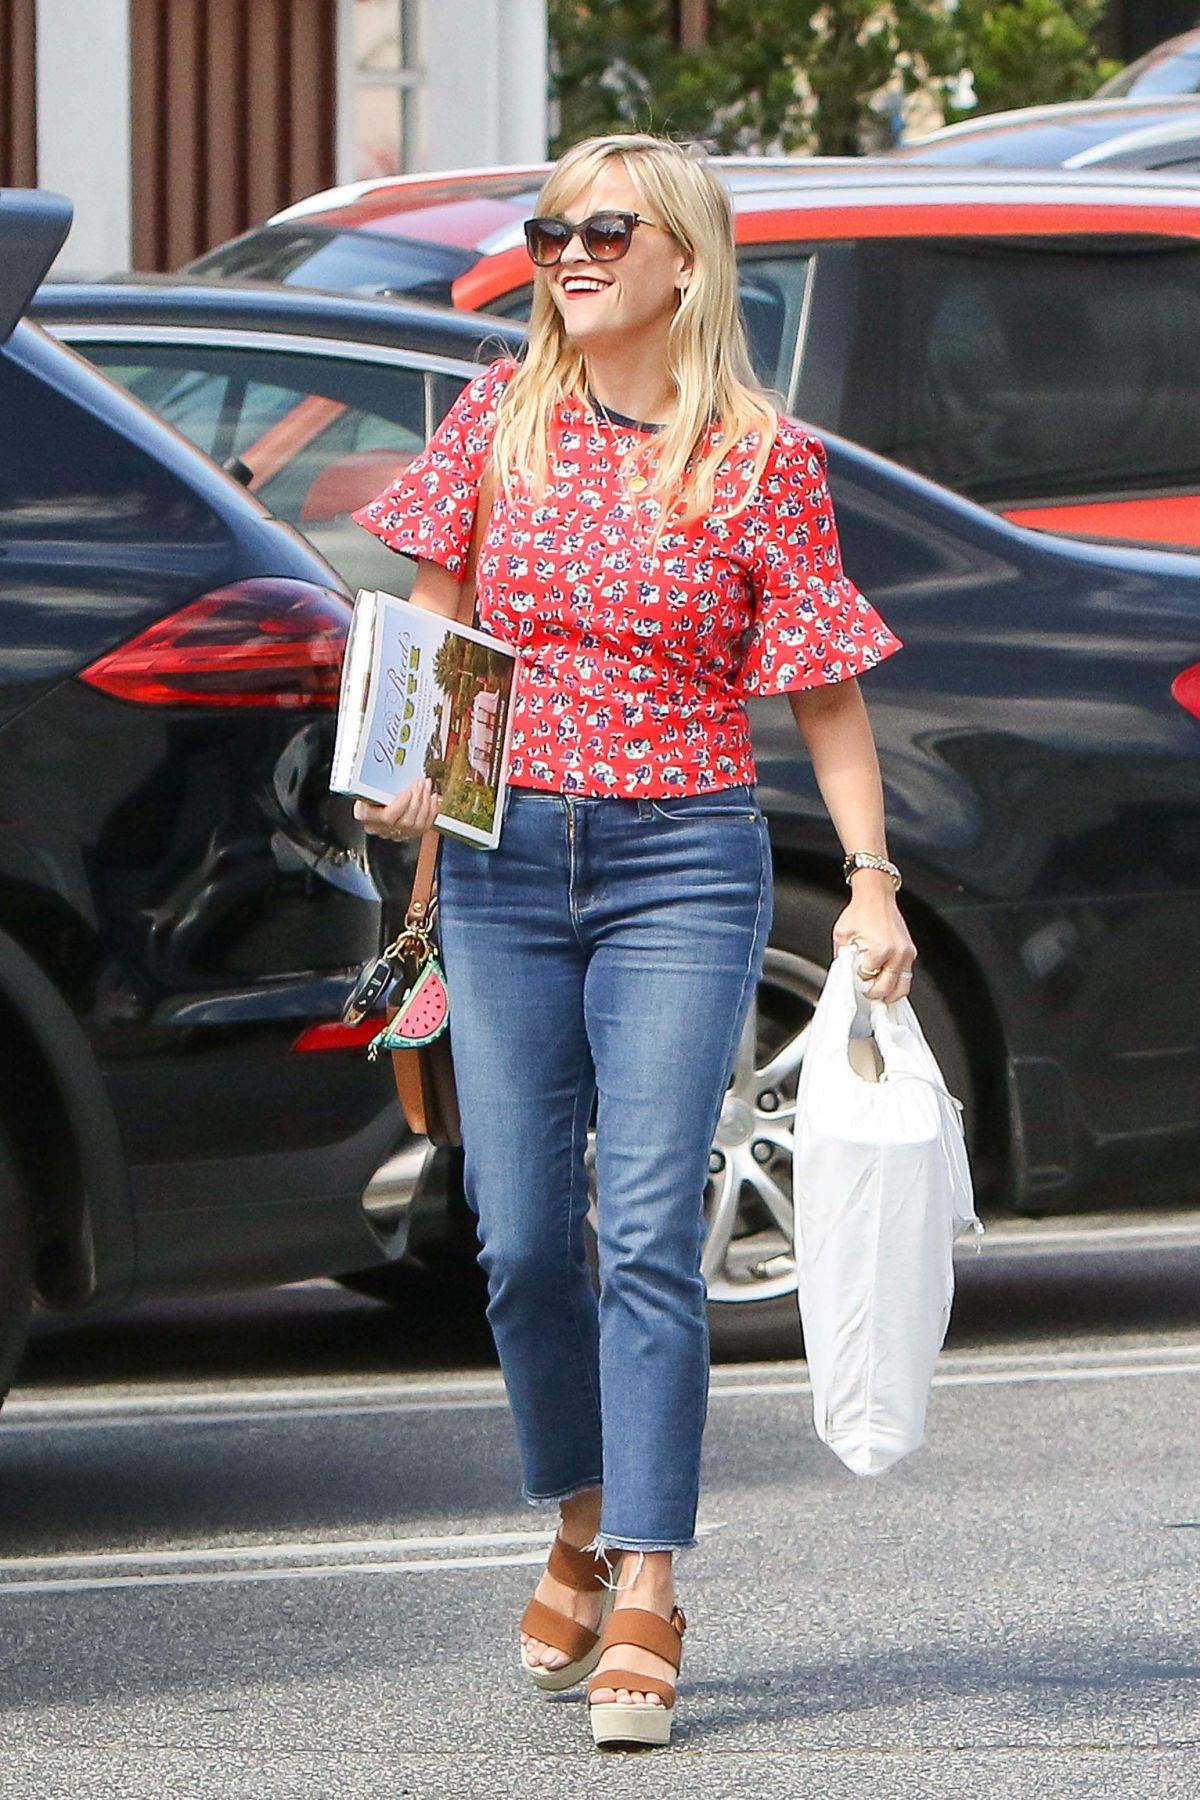 REESE WITHERSPOON in Jeans Out Shopping in Los Angeles 05/16/2017